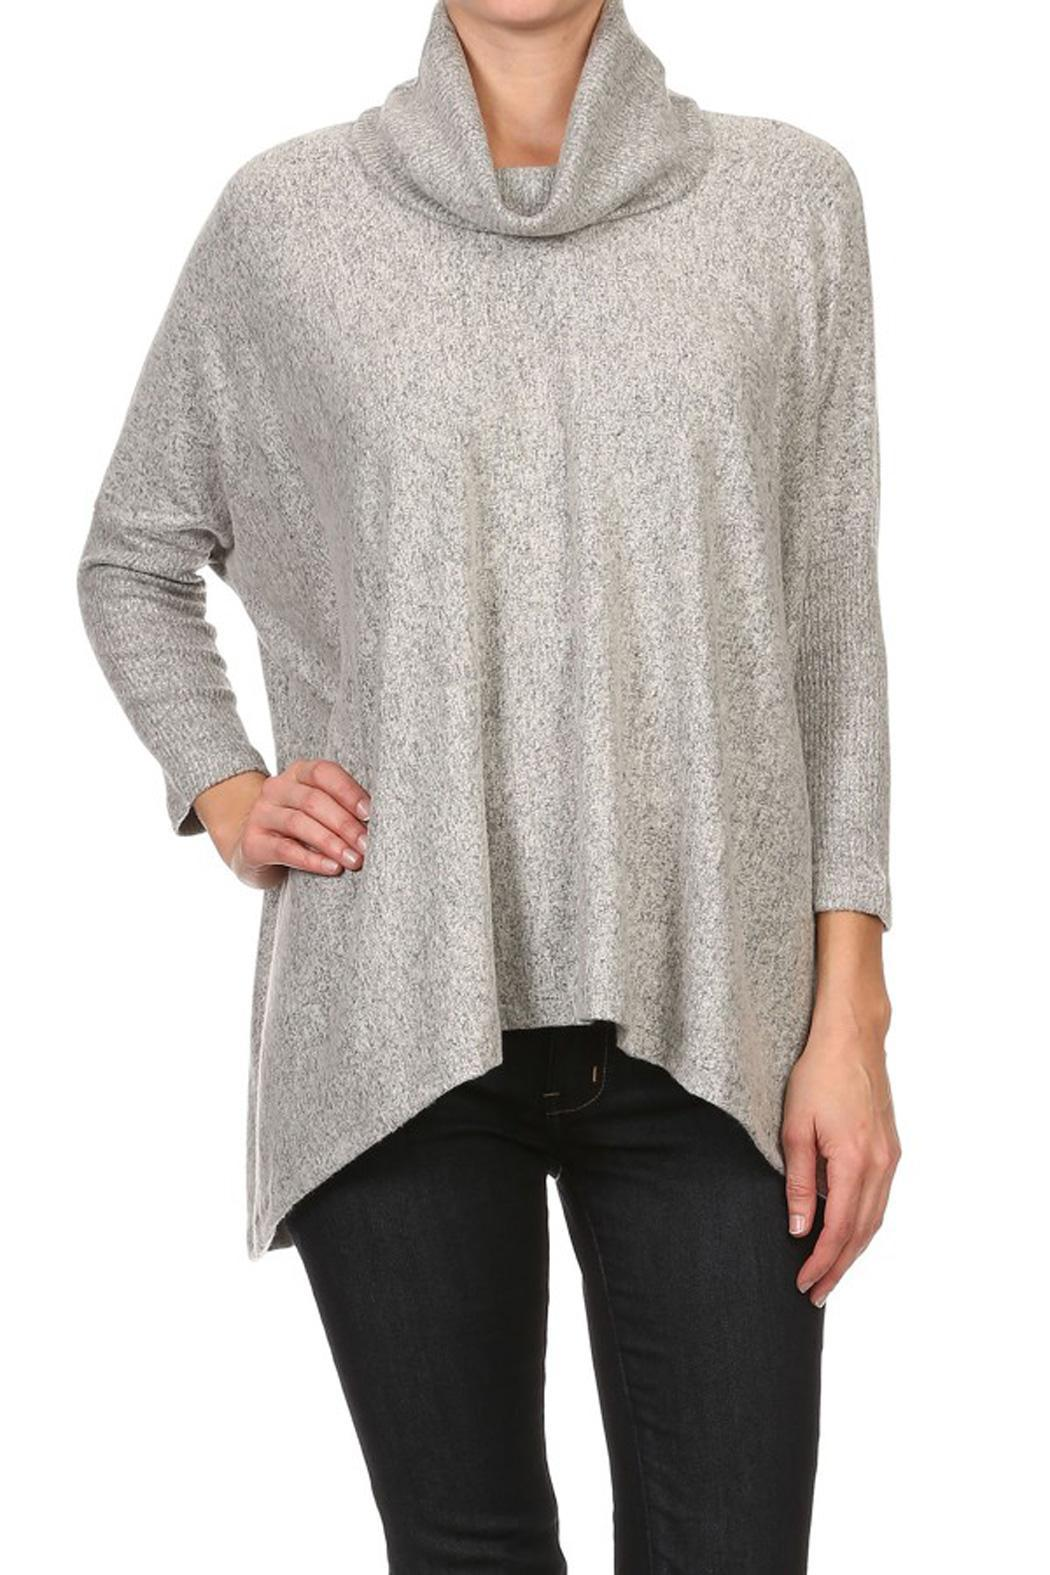 Freeloader Cowl Neck Sweater from New Jersey by Making Waves ...